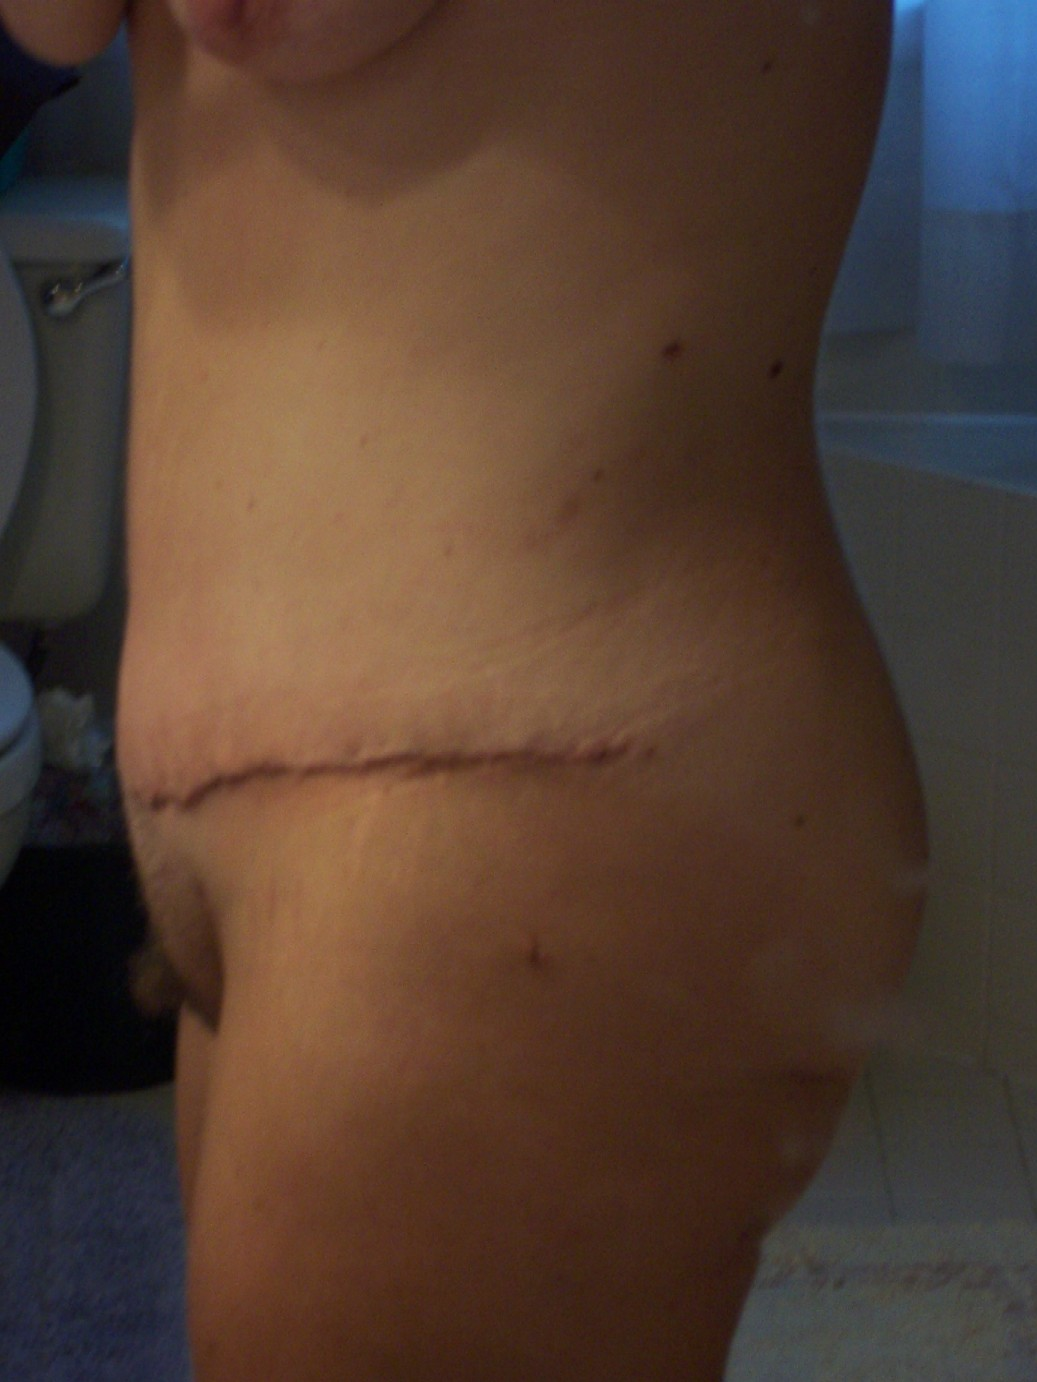 Side close up scar 3 1-2 weeks